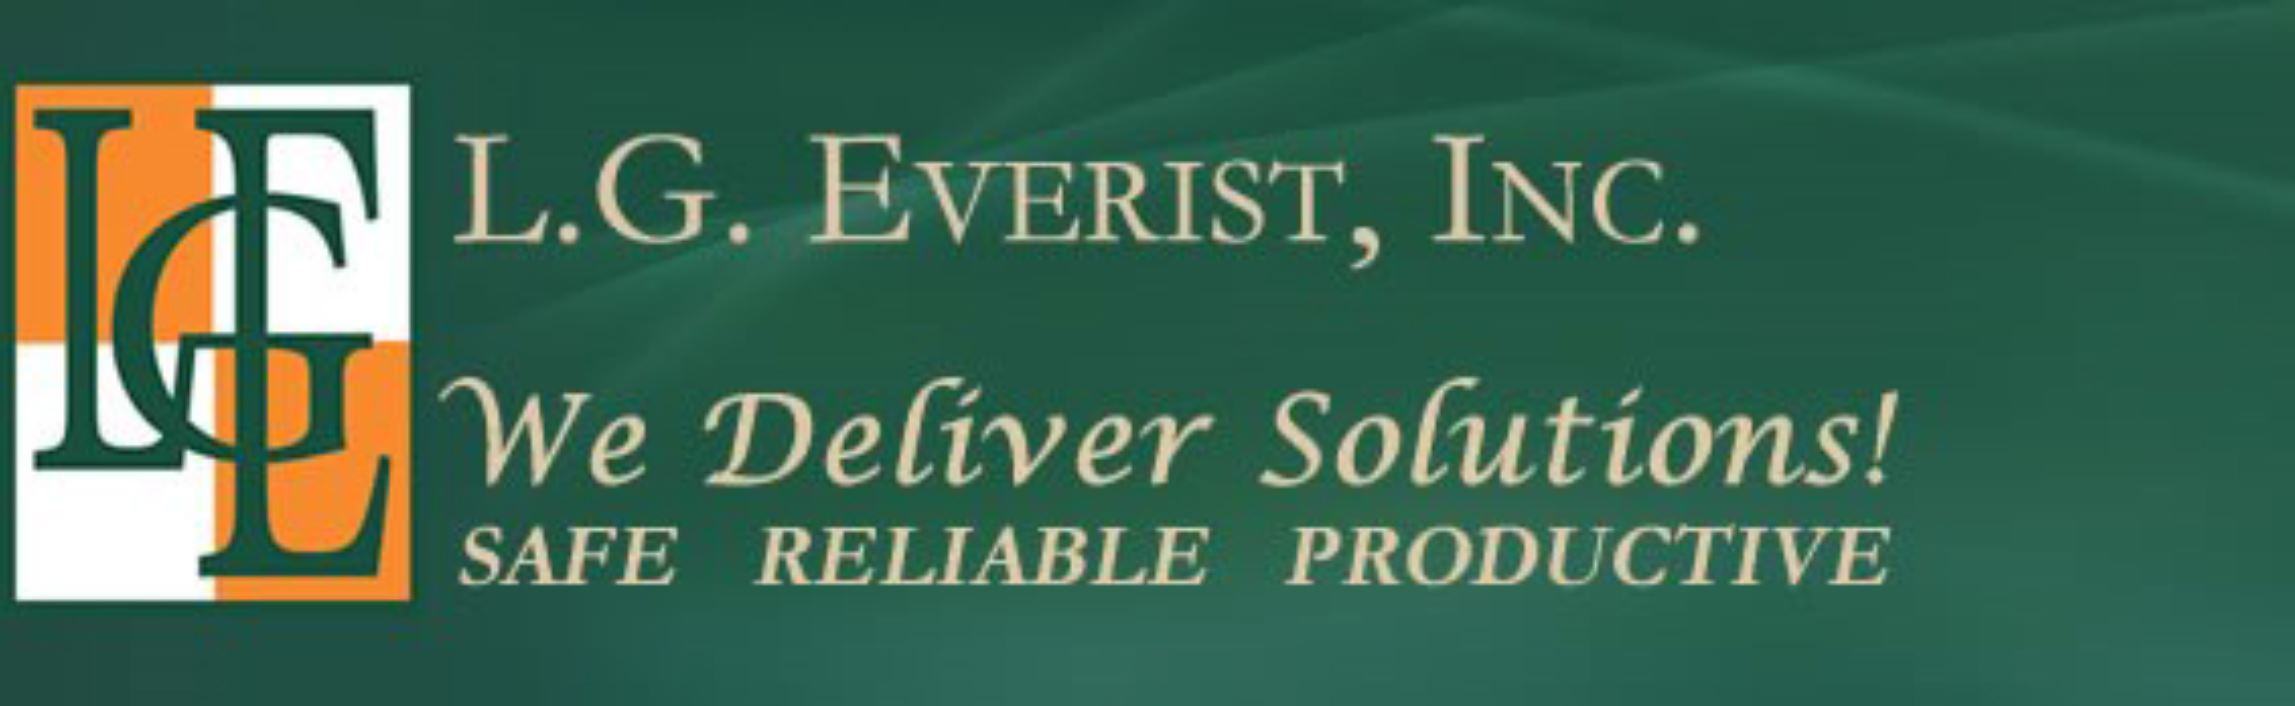 LG Everist Inc We Deliver Solutions Logo